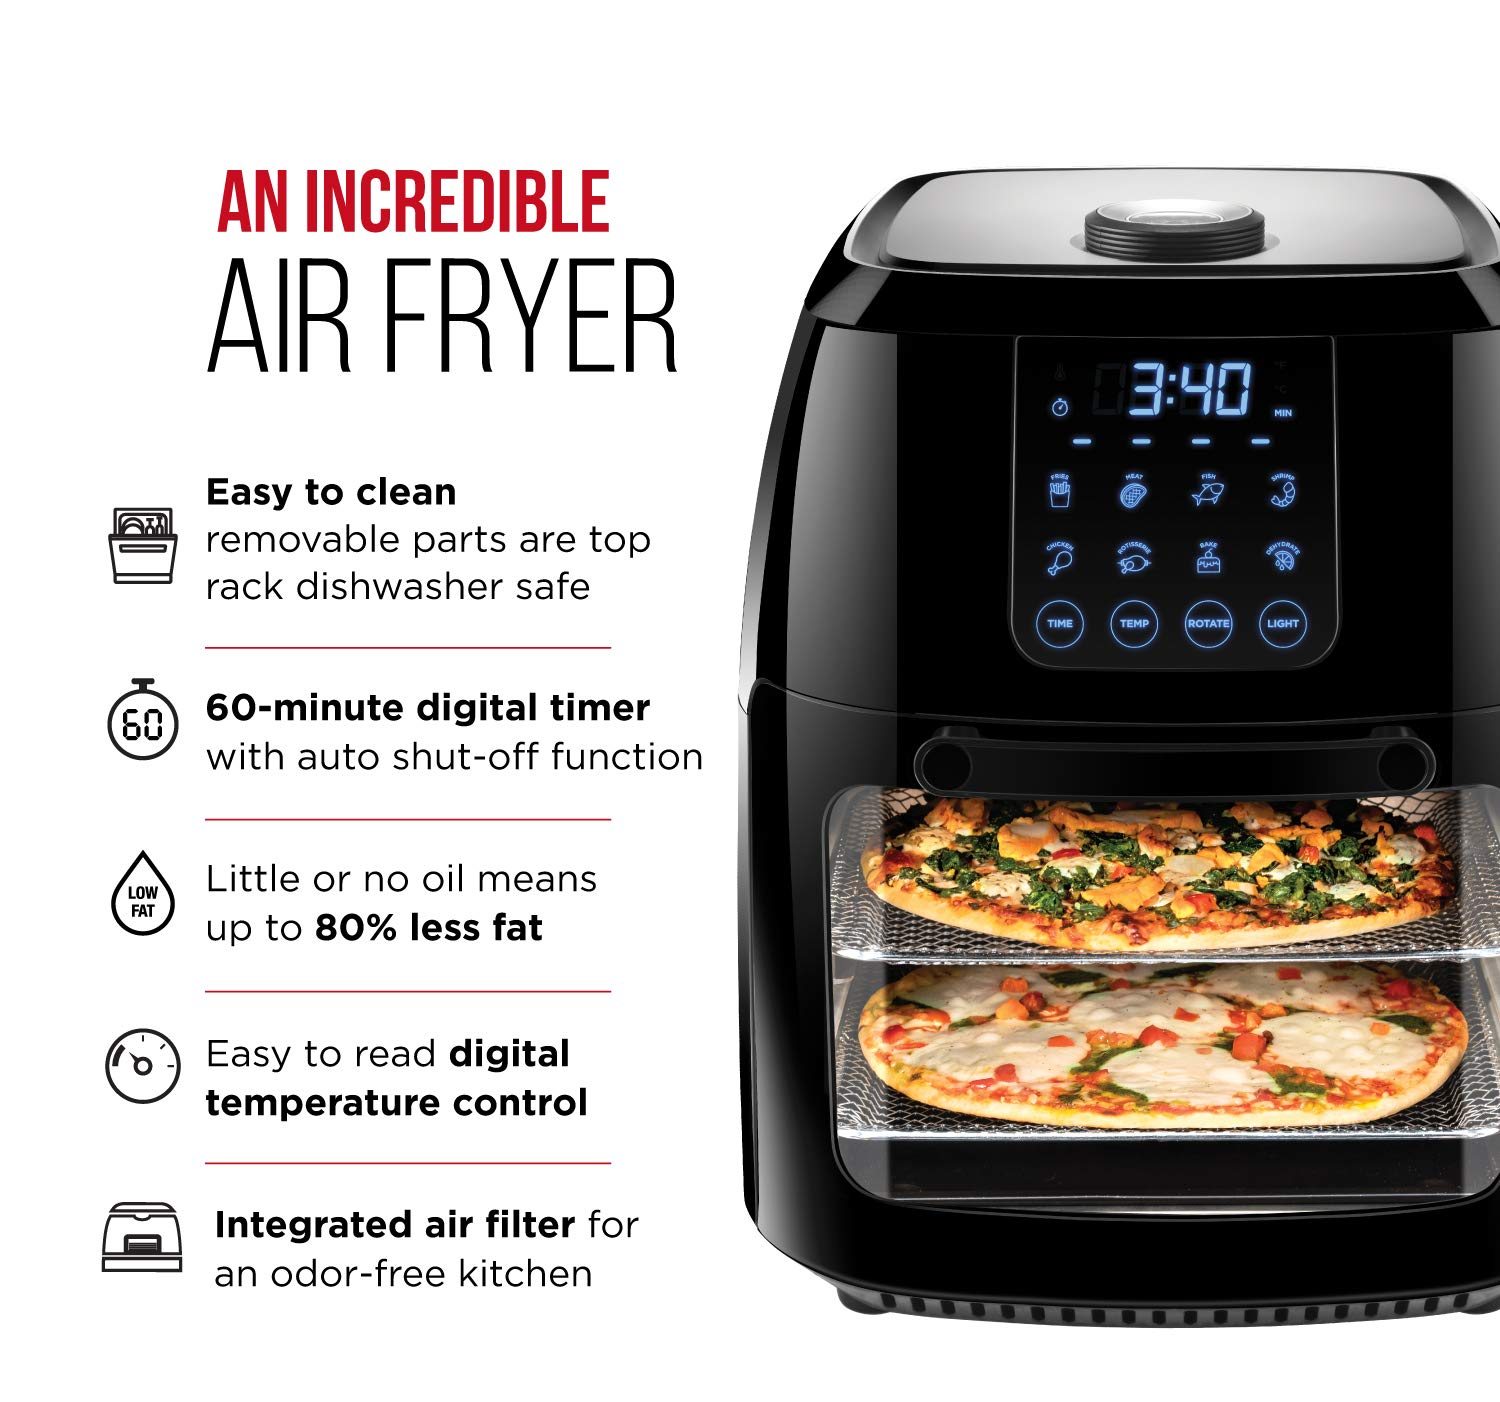 Chefman 6.3 Quart Digital Air Fryer Rotisserie, Dehydrator, Convection Oven, 8 Presets to Air Fry, Roast, Dehydrate, Bake More, BPA-Free, Auto Shut-Off, Accessories Included, XL Family Size, Black